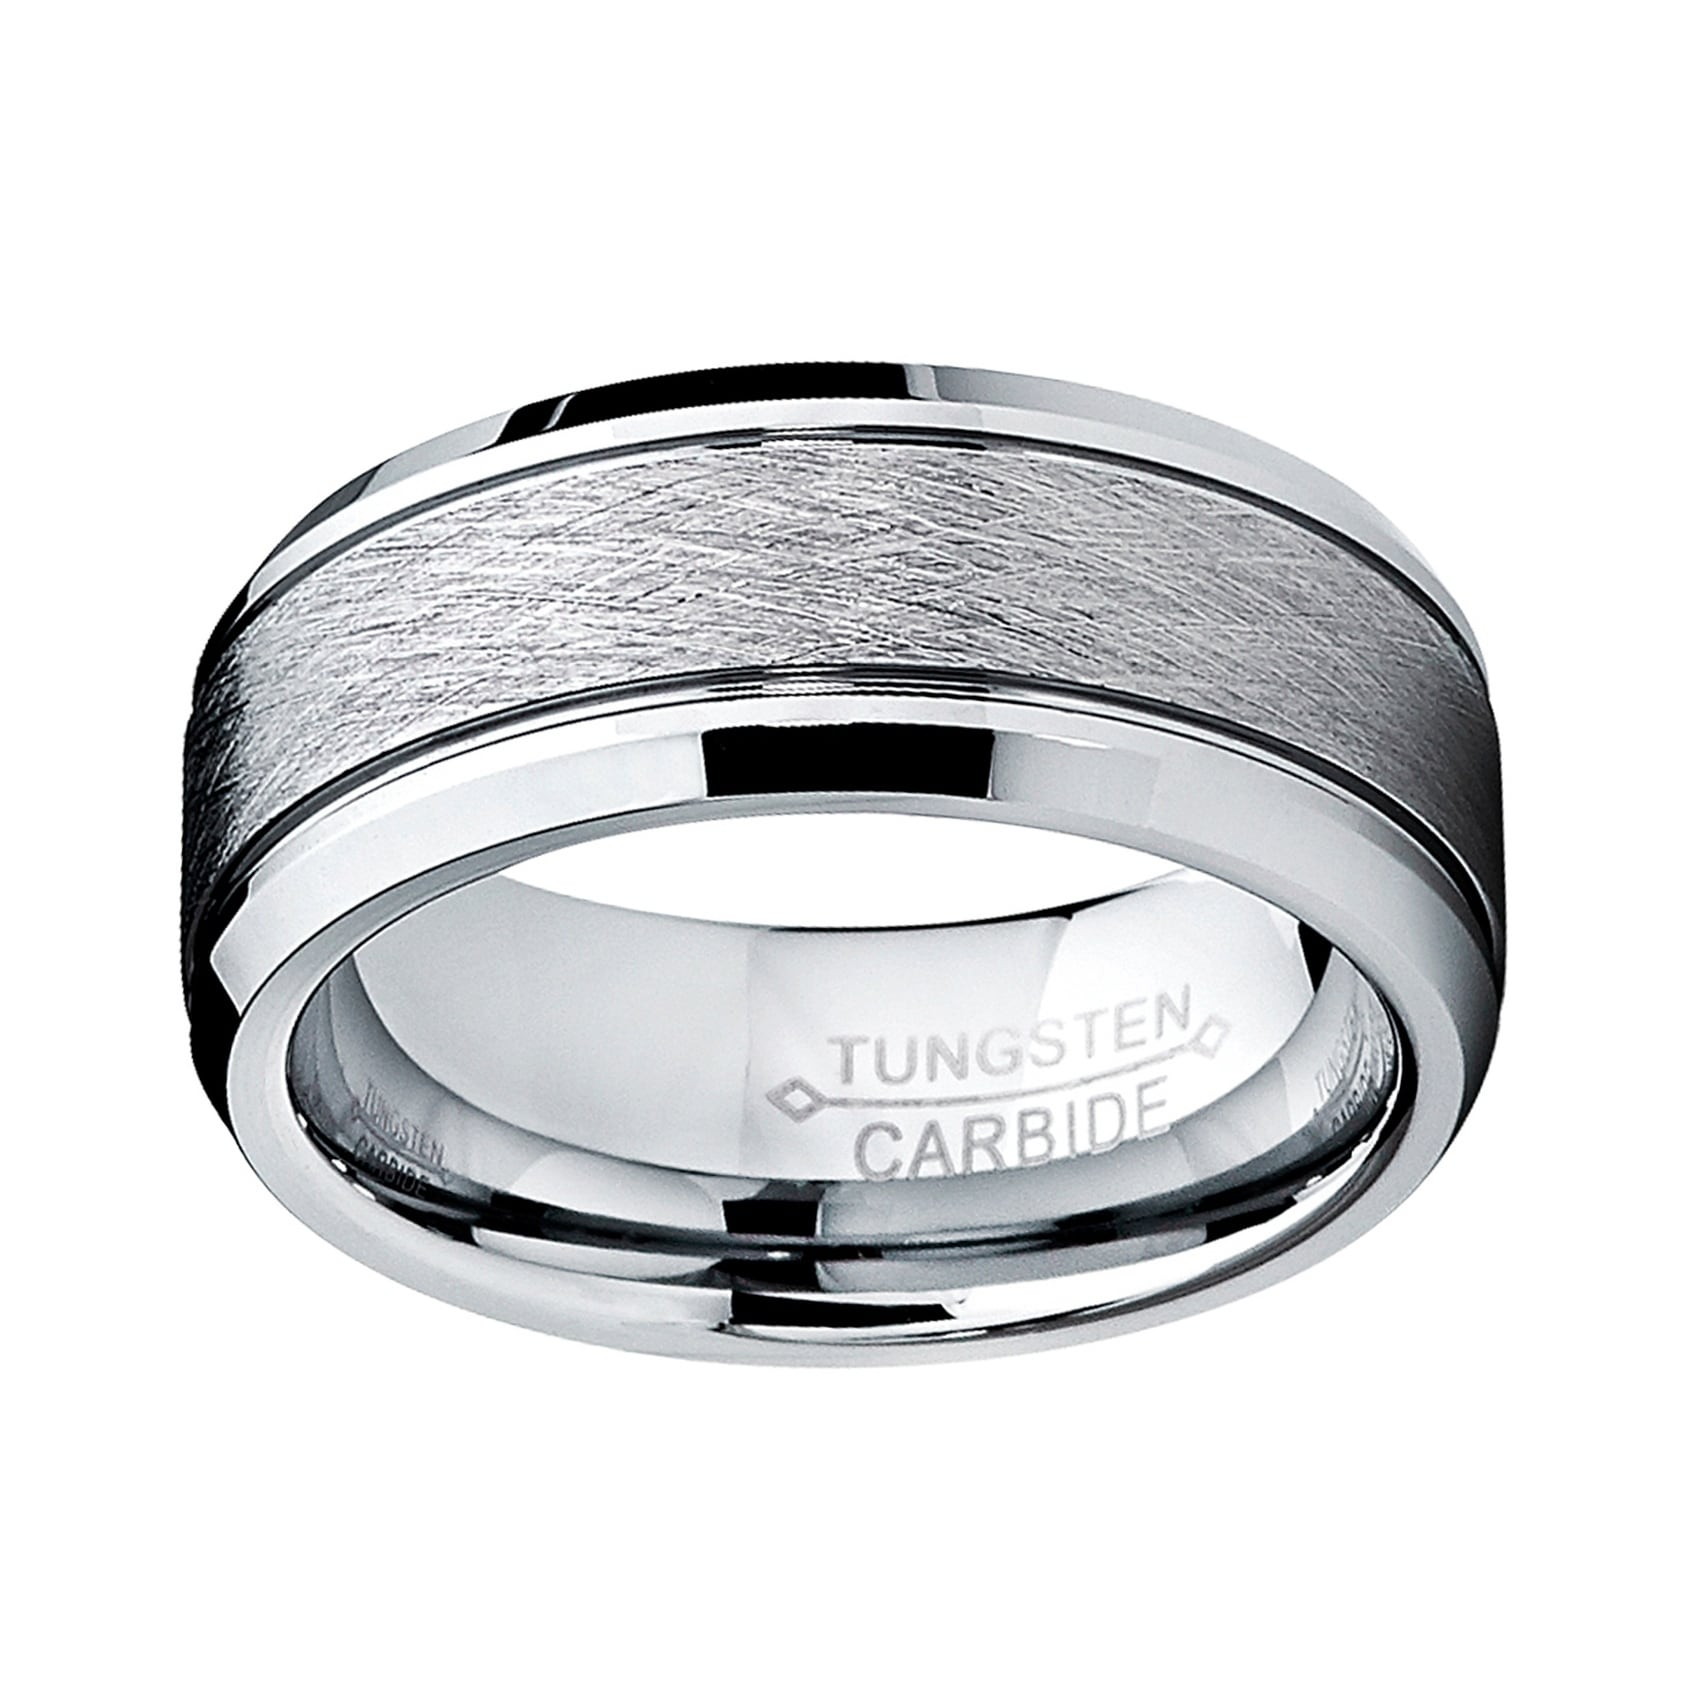 Black Tungsten Carbide Fish N Hunt Ring 8mm Wedding Band Anniversary Ring for Men and Women Size 10.5